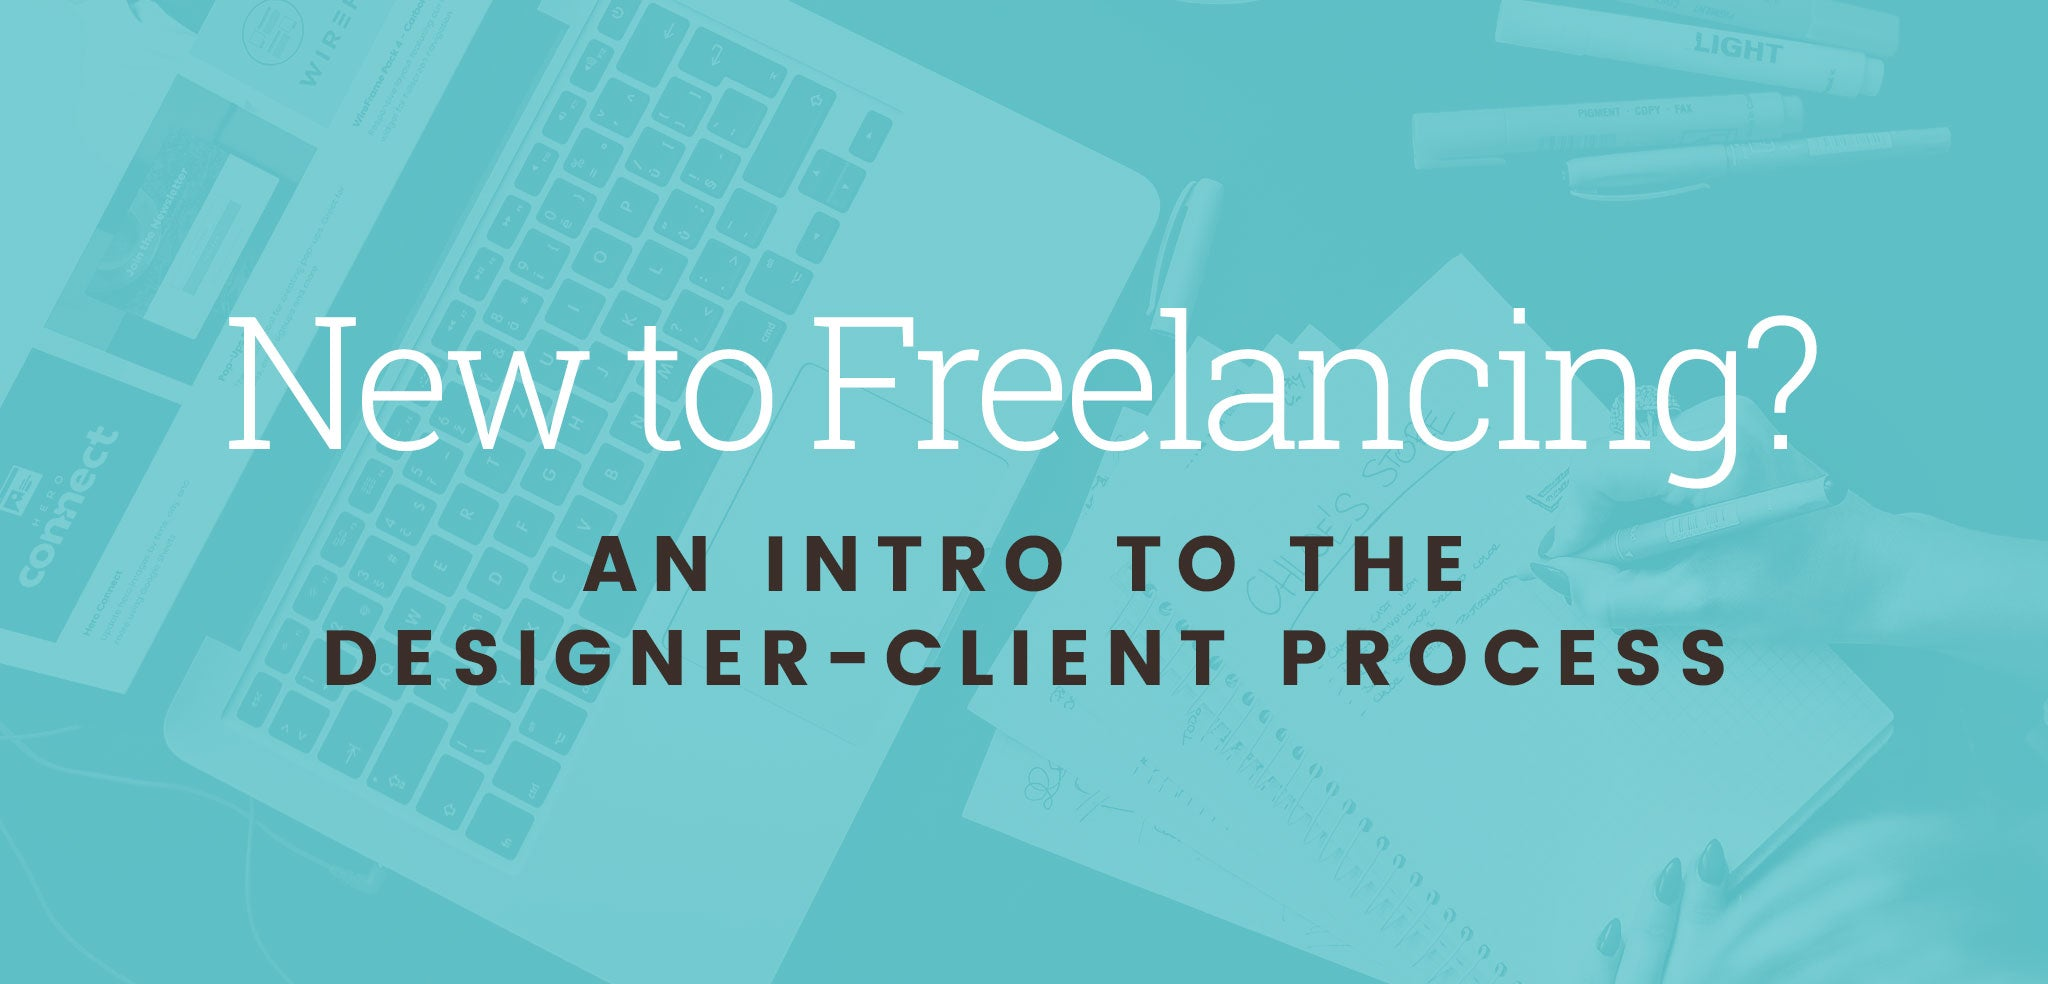 New to Freelancing? An Intro to the Designer-Client Process